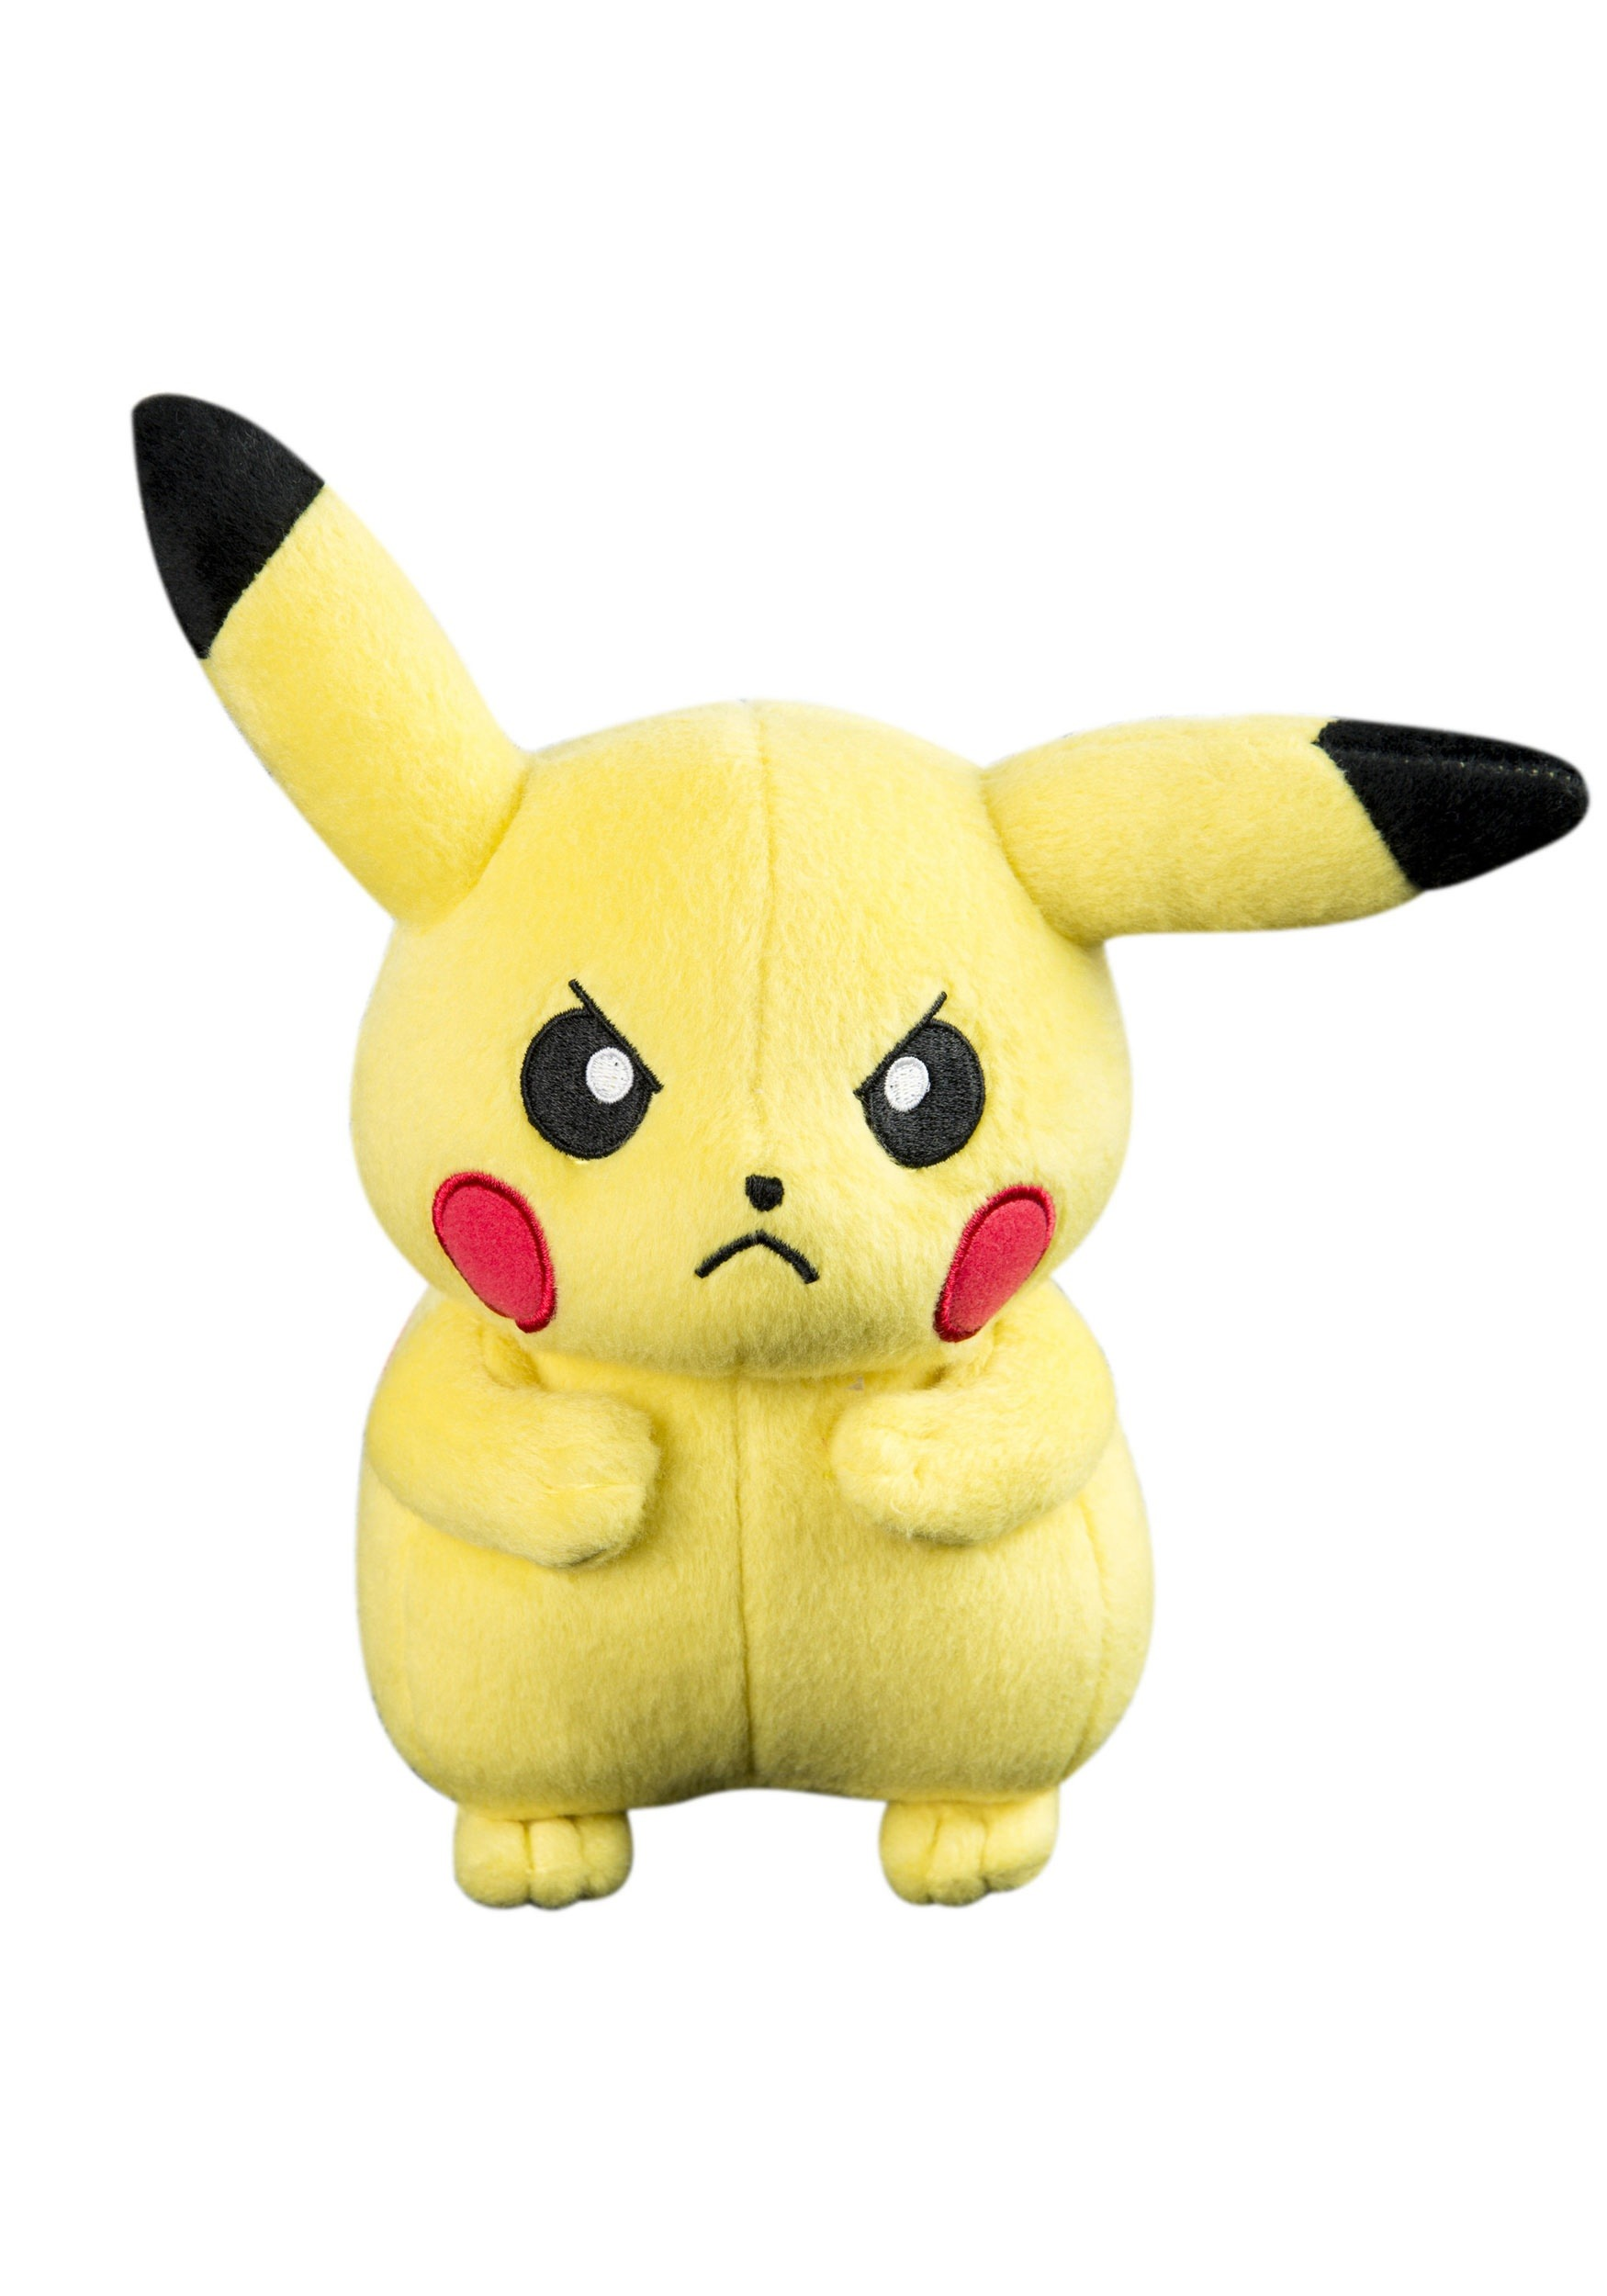 Pikachu Pokemon Stuffed Toy TOMT19310